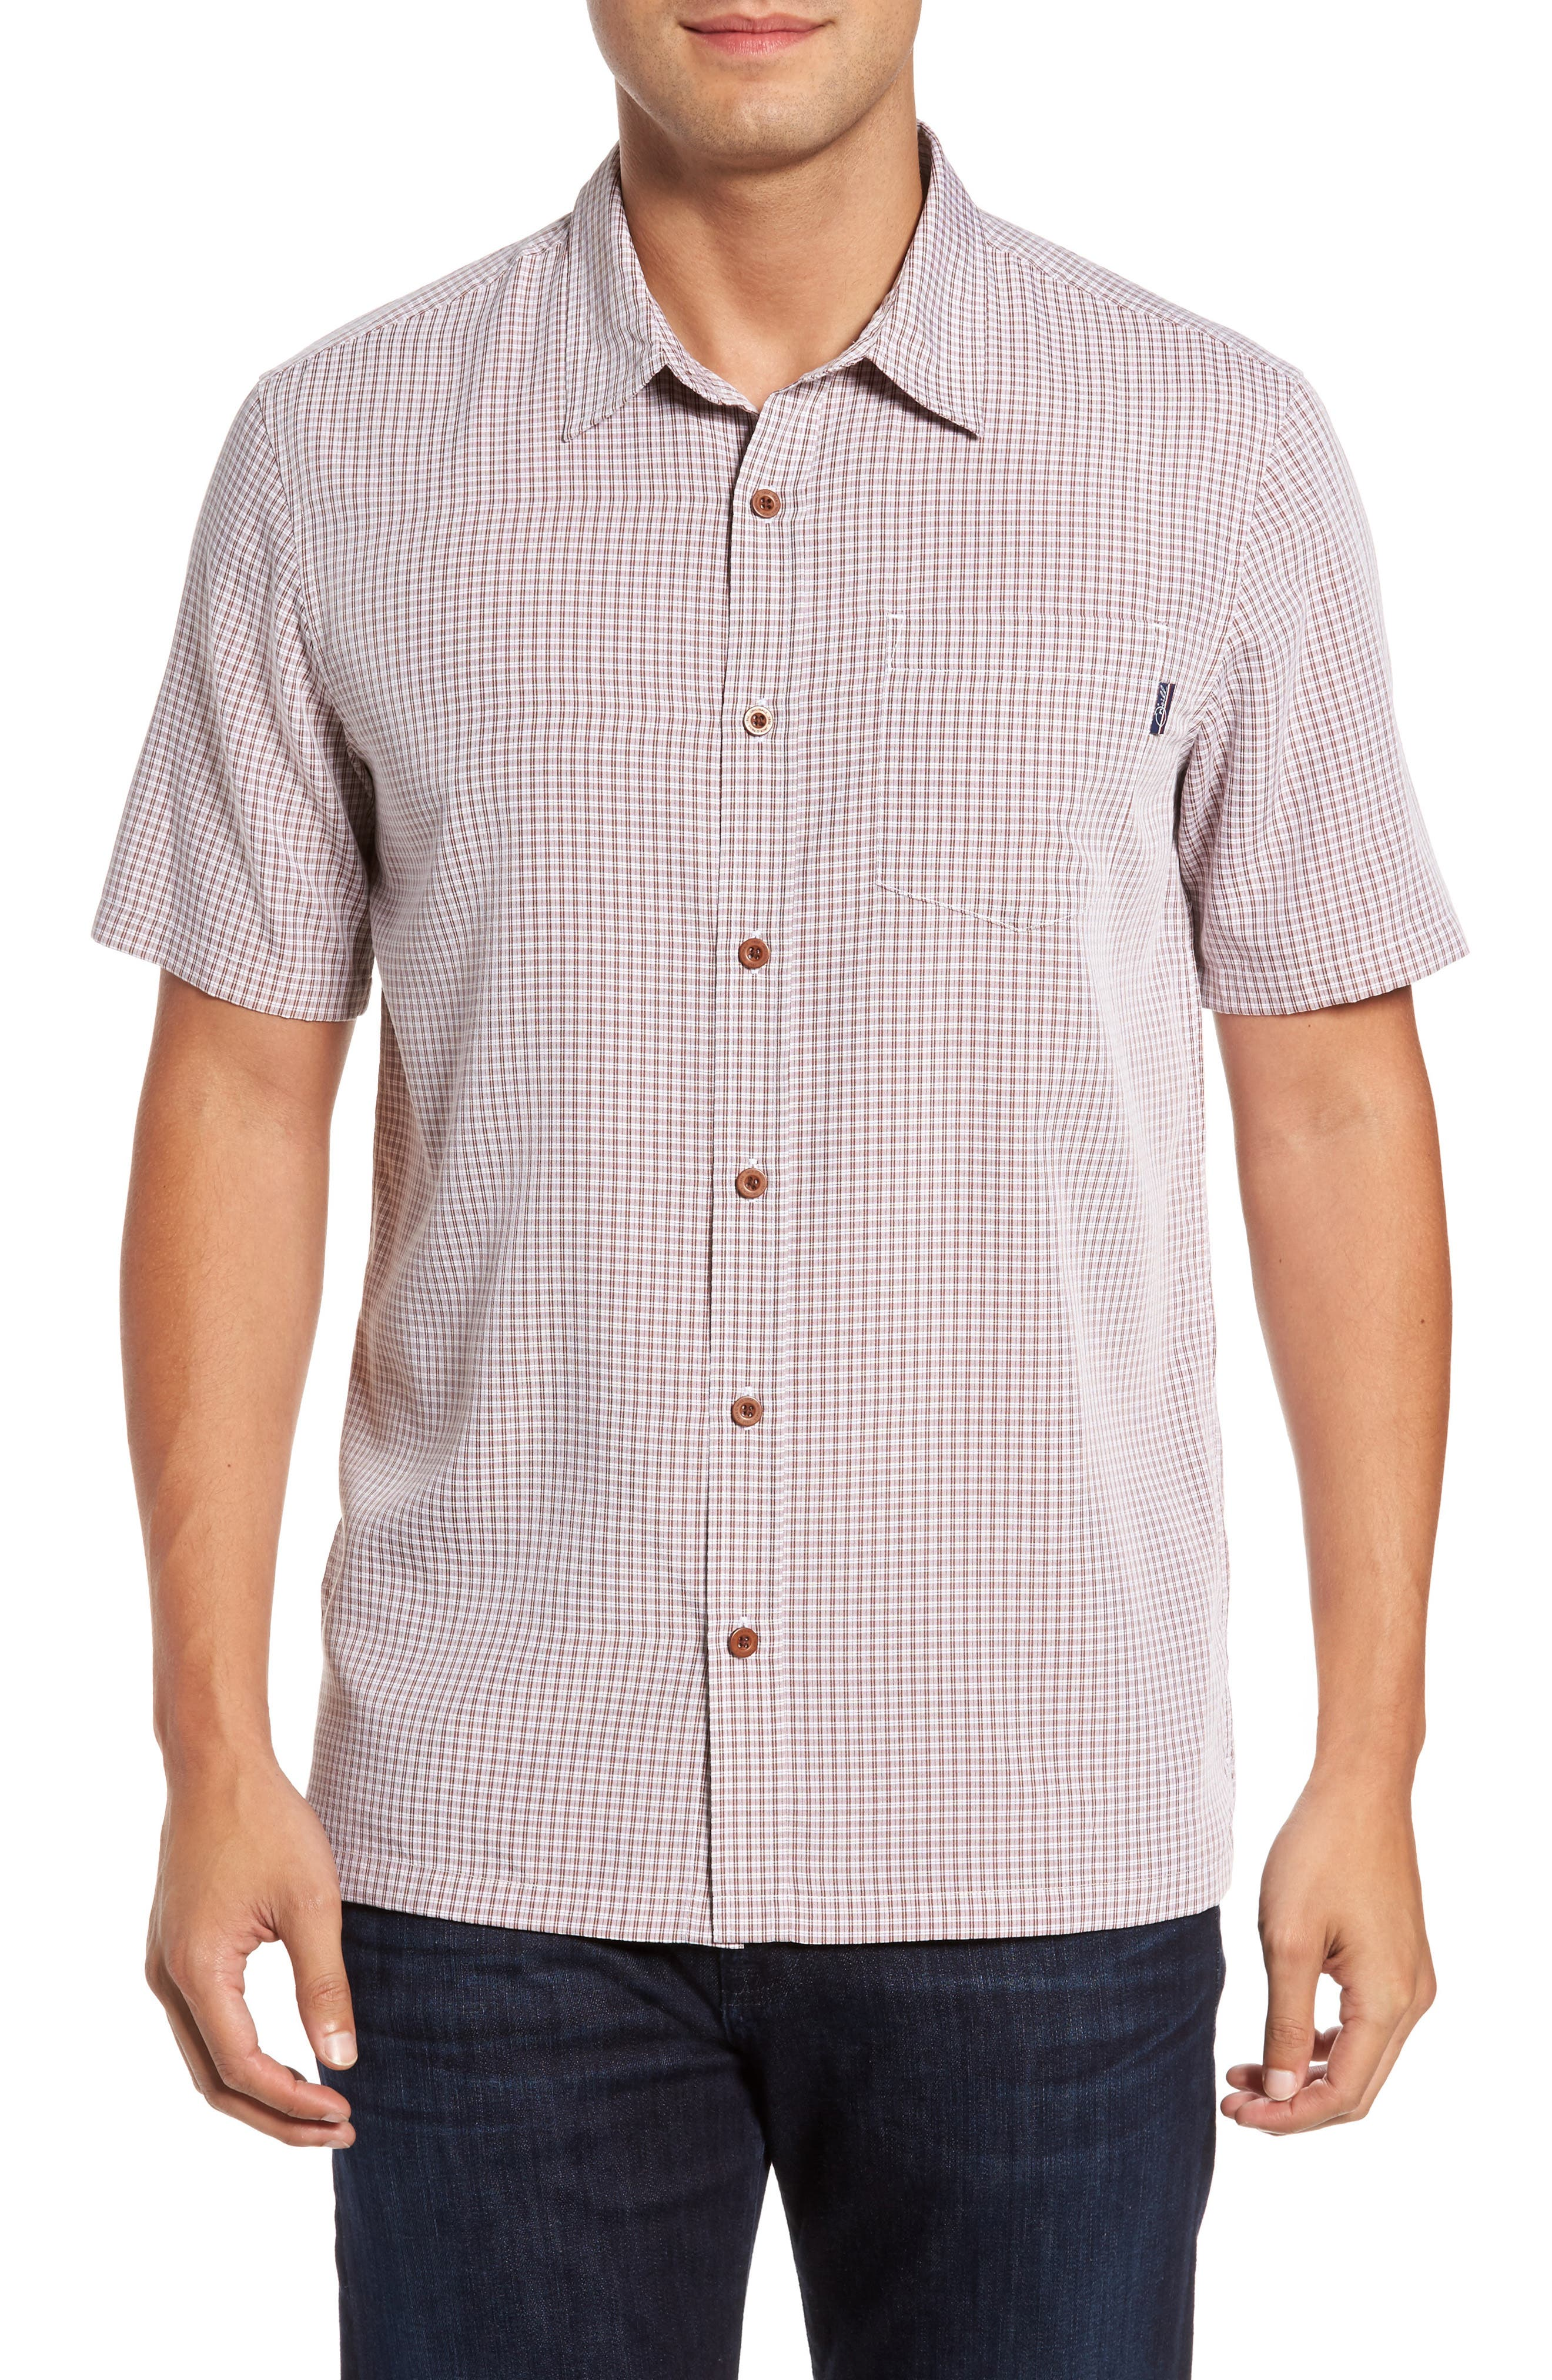 Ford Sport Shirt,                         Main,                         color, 602